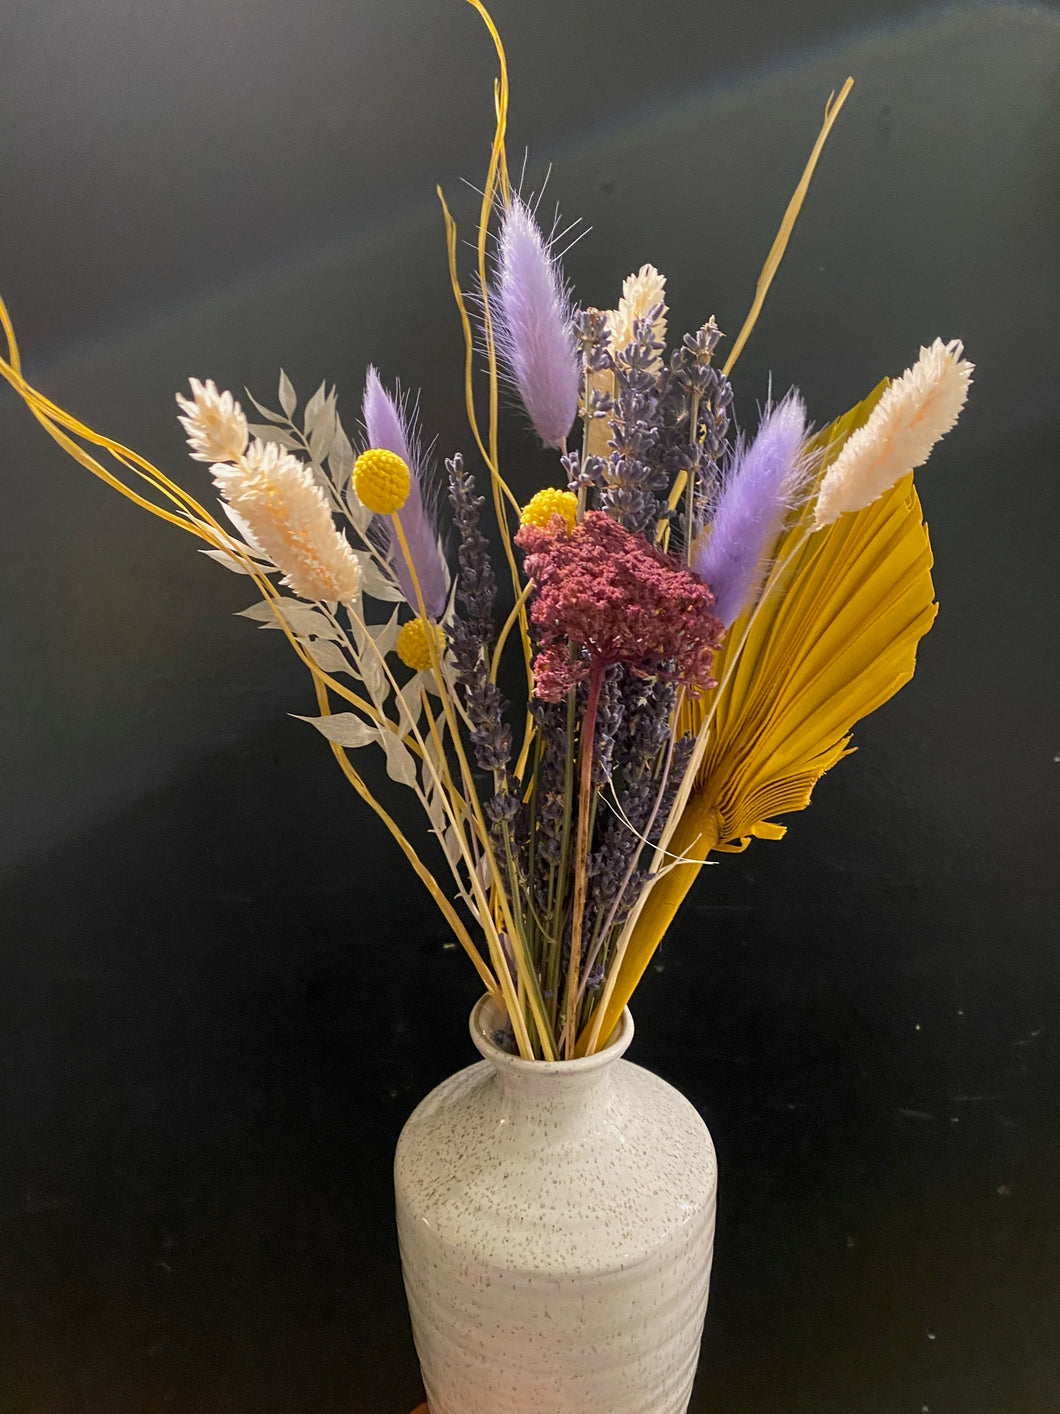 Spring Rustic Dried Arrangement in Bud Vase